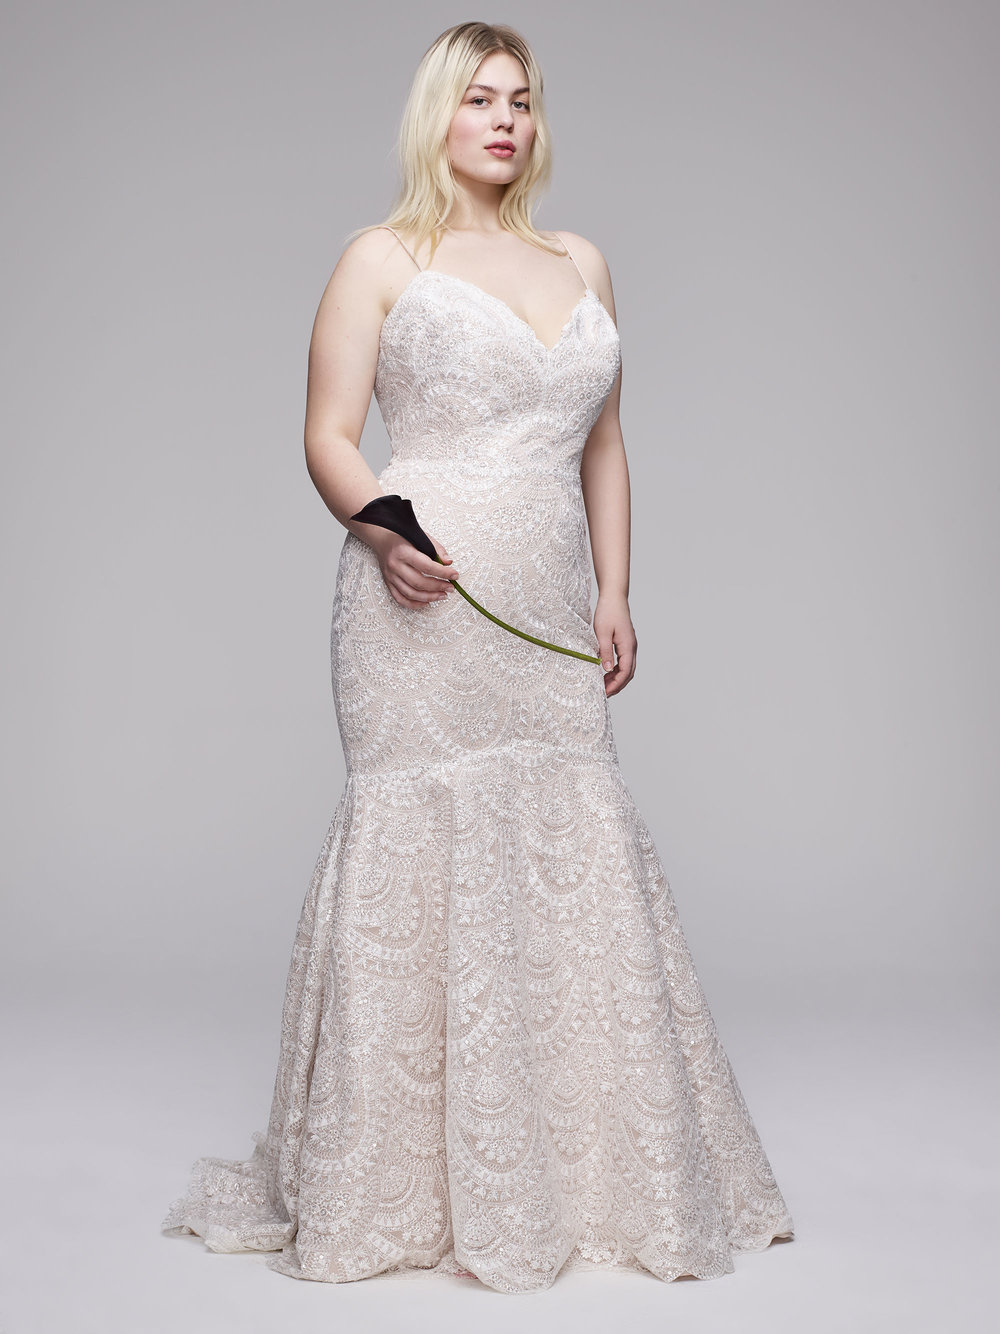 The Zurie Plus Size Wedding gown from Curve Couture by Anne Barge